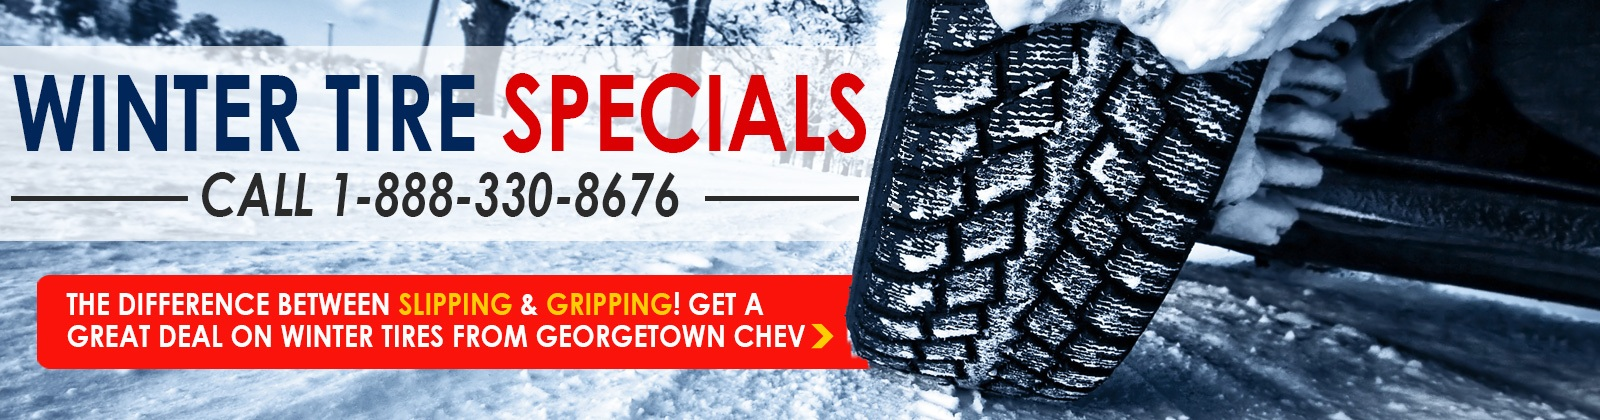 Great deals on Winter Tires from Georgetown Chevrolet in Georgetown